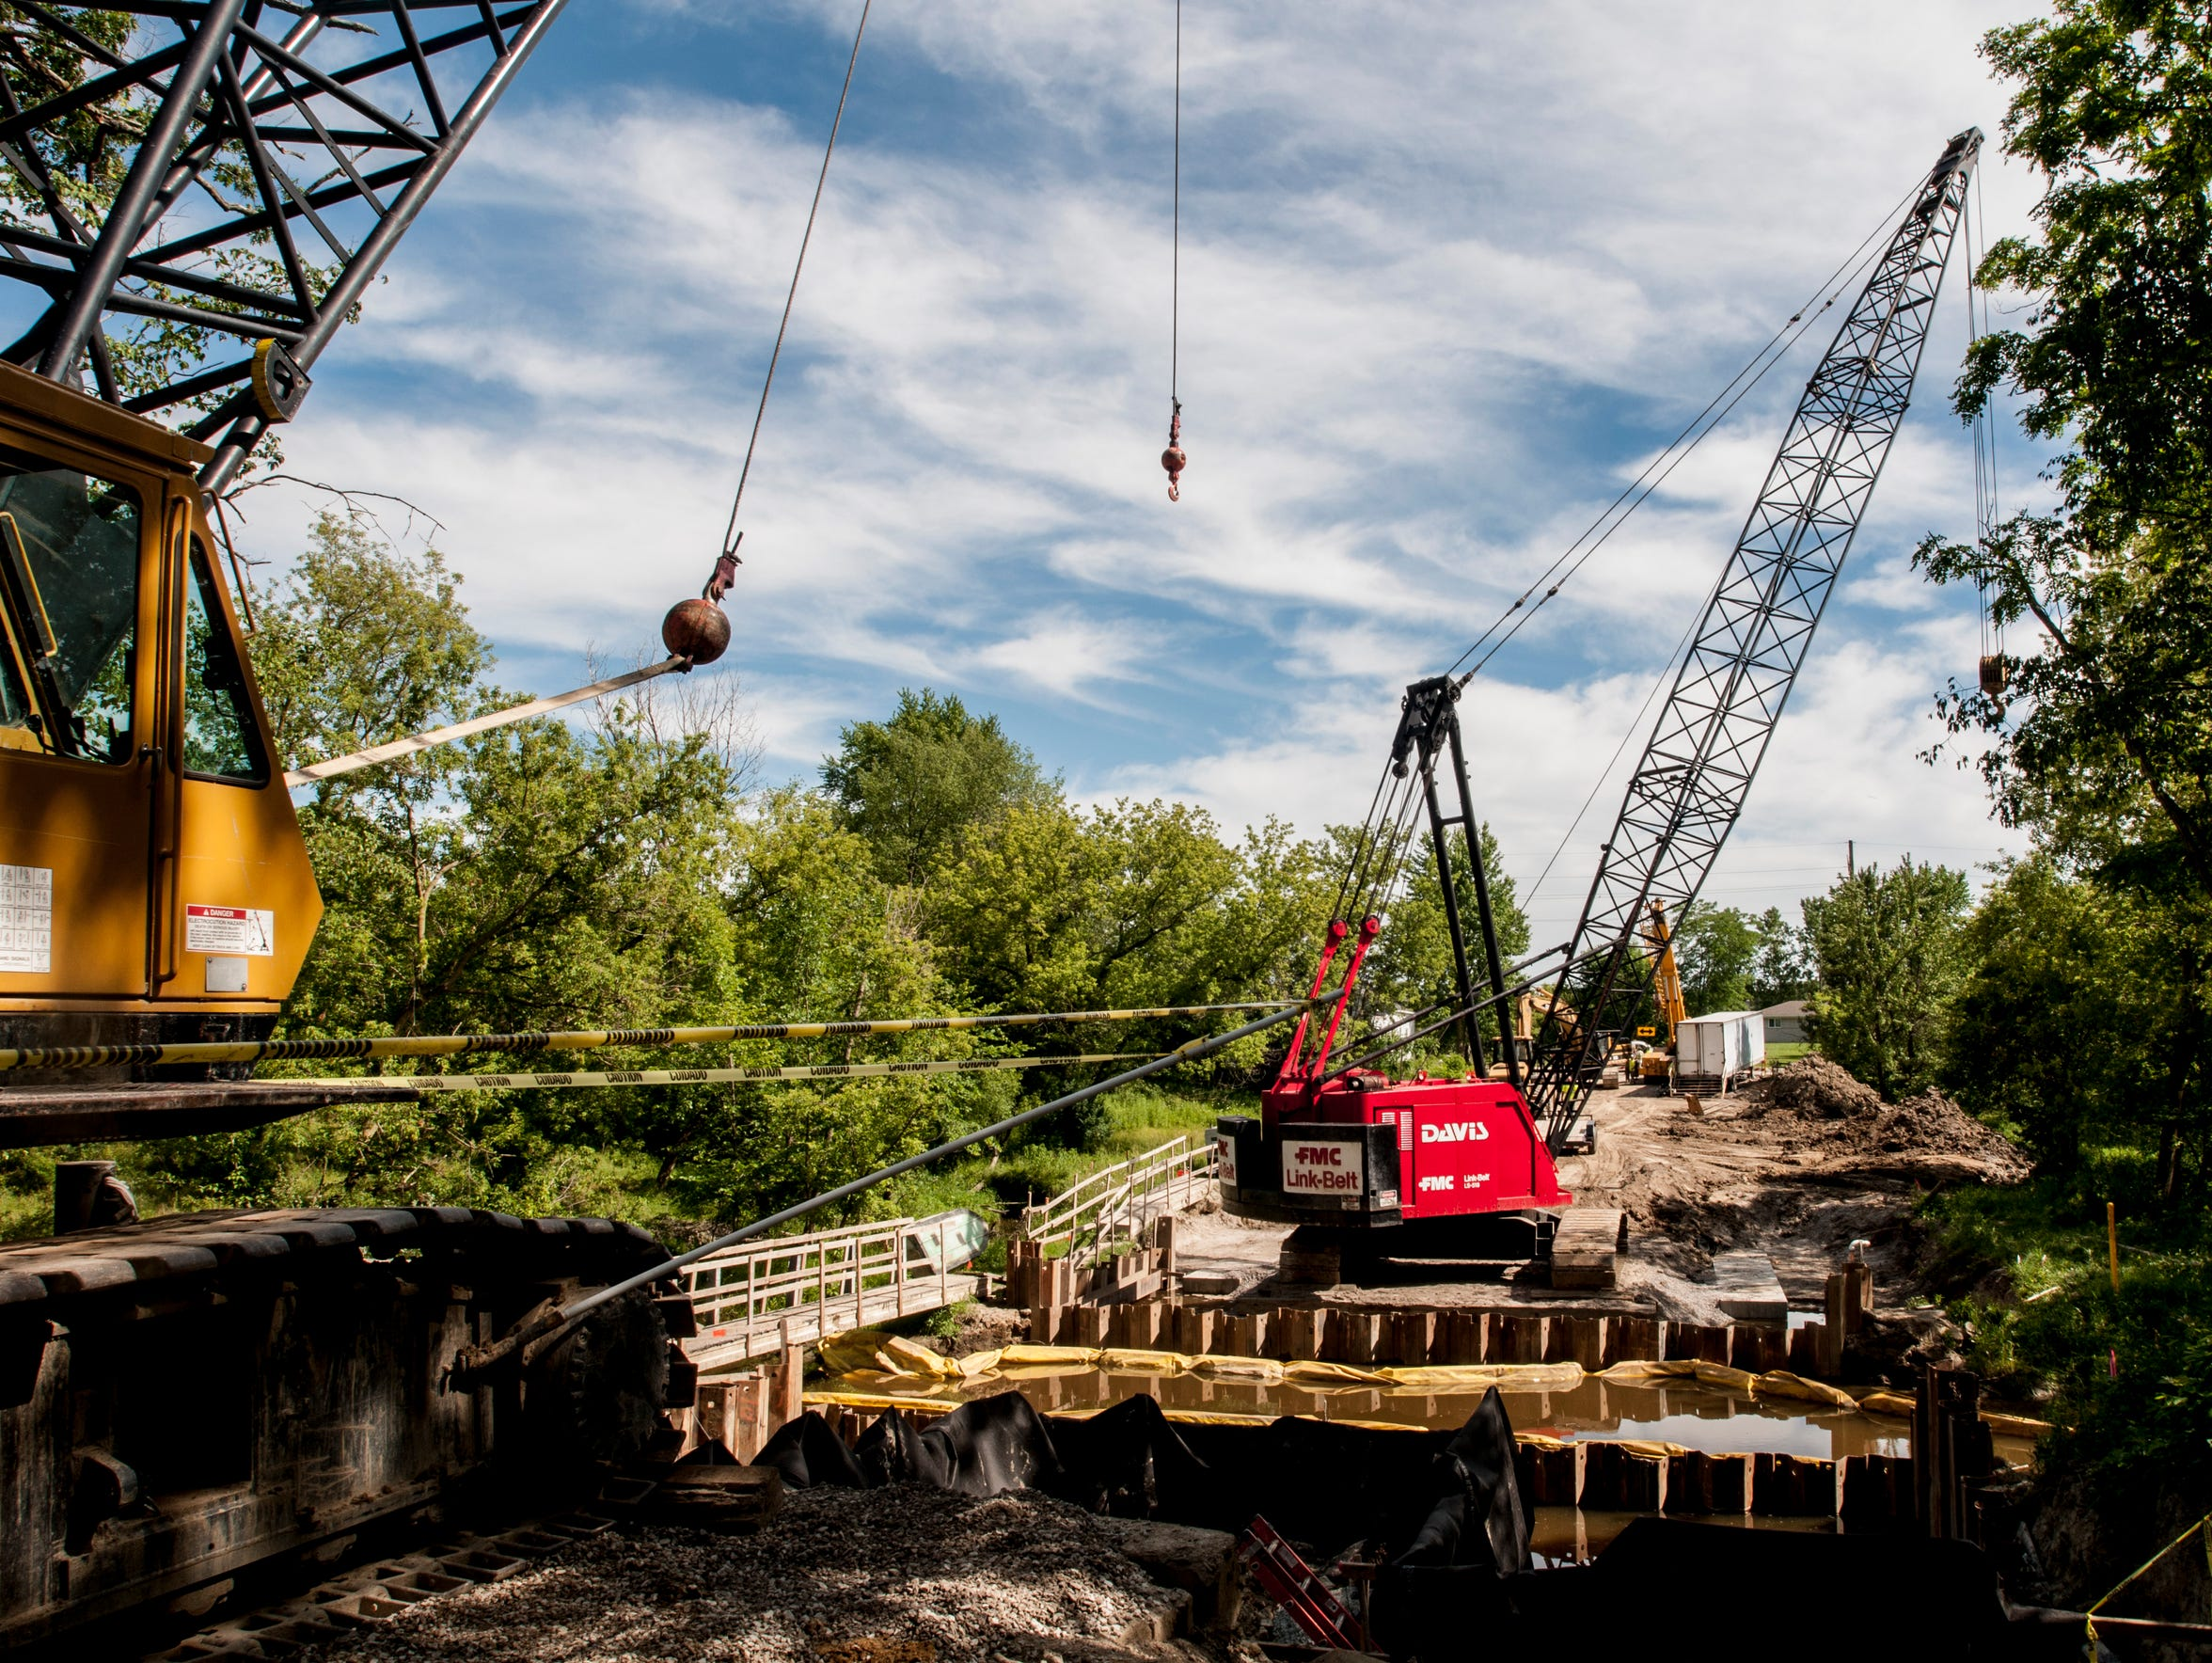 Work is underway on replacing the Hessen Road bridge